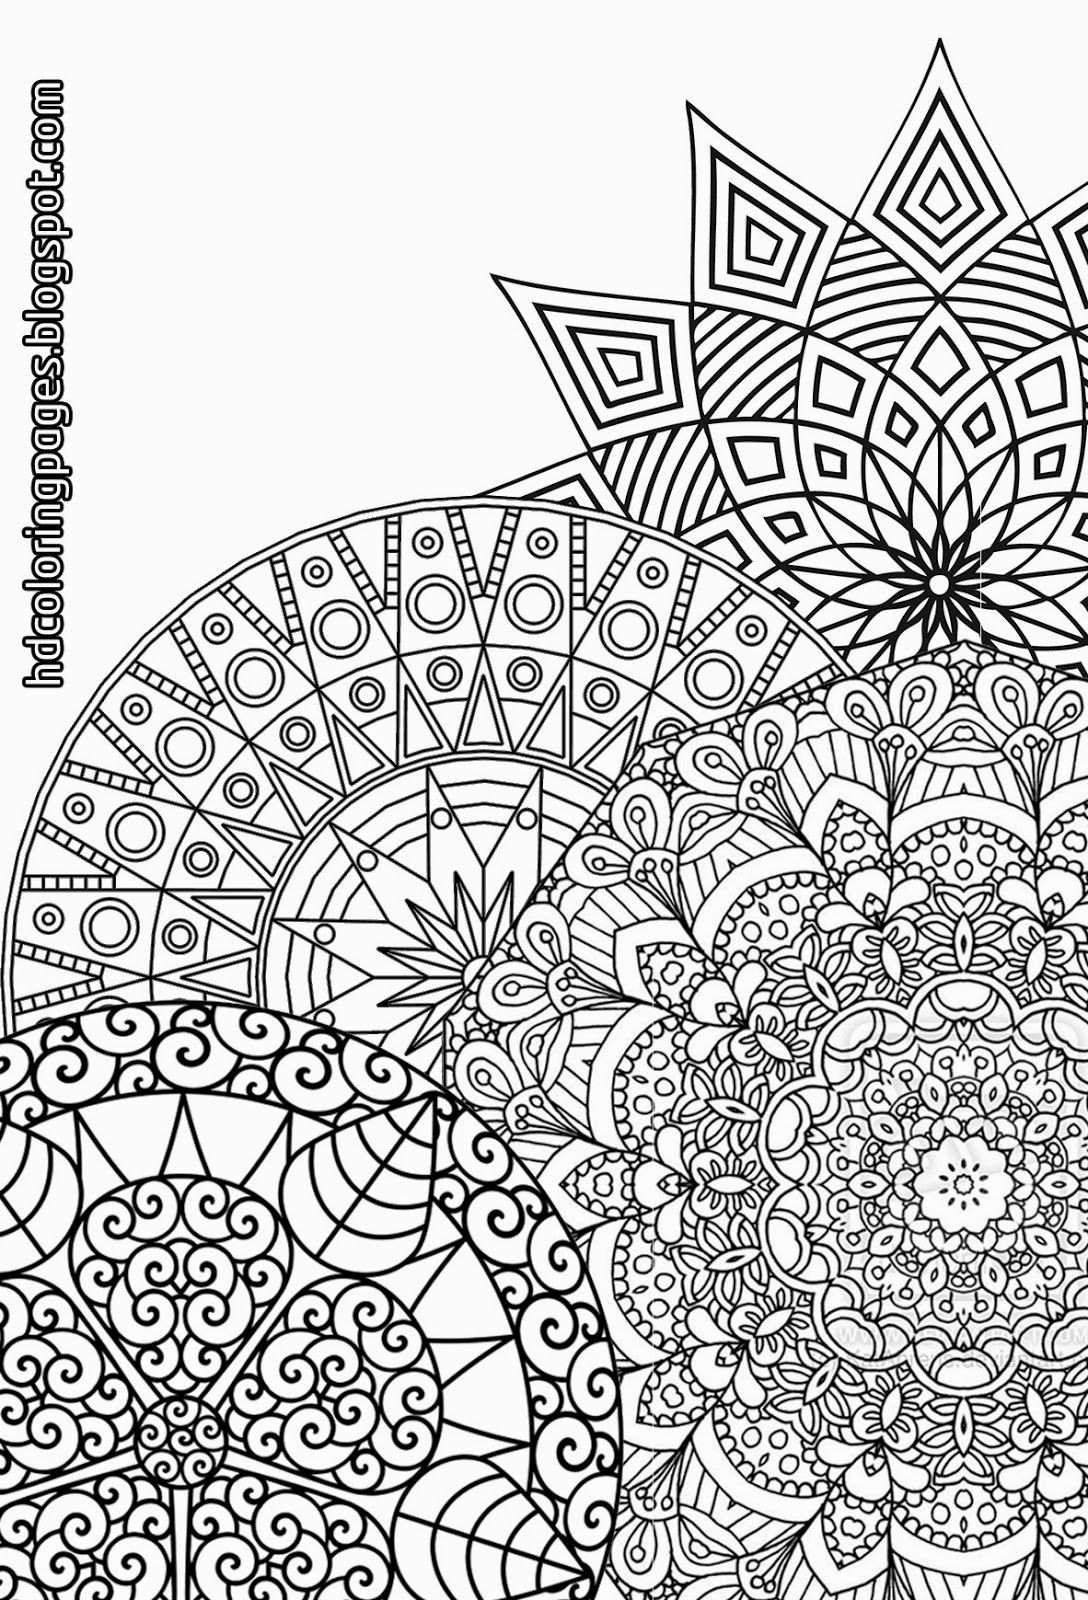 Best ideas about Detailed Coloring Pages For Adults . Save or Pin Super Detailed Mandalas Coloring Pages for Adult Now.